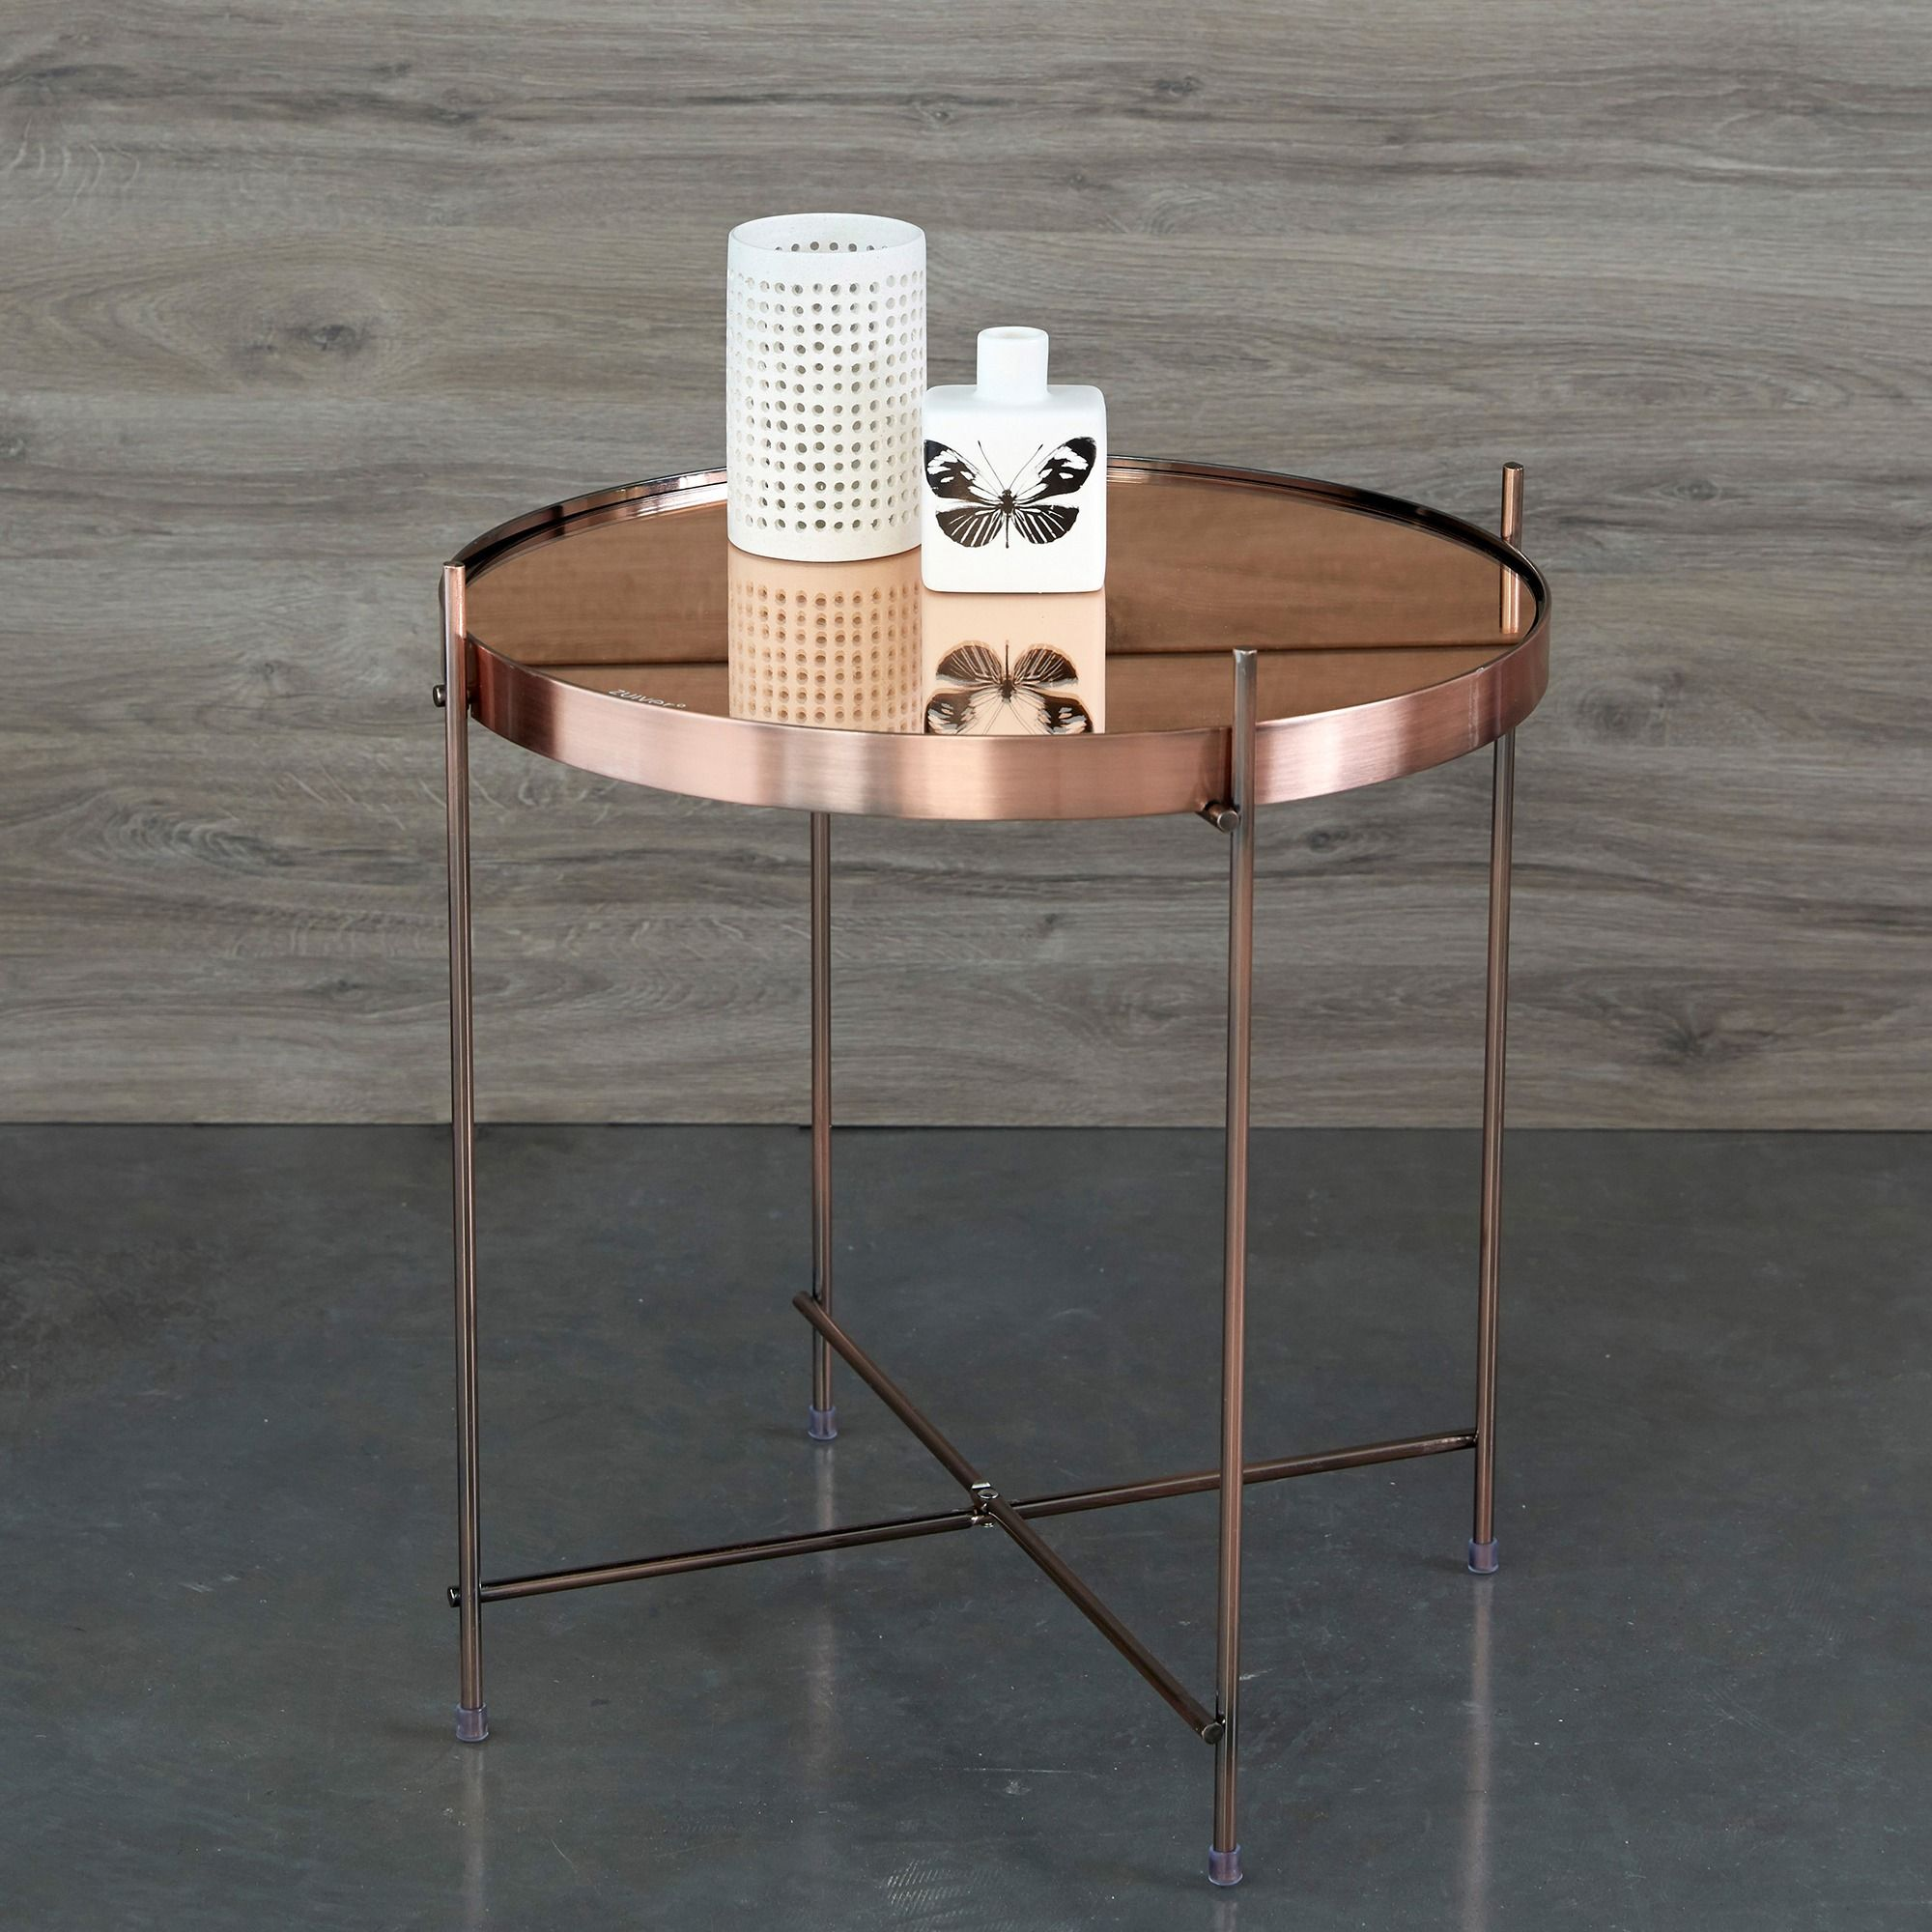 Table Basse Gueridon Metal Plateau Miroir Cupid Zuiver 3suisses